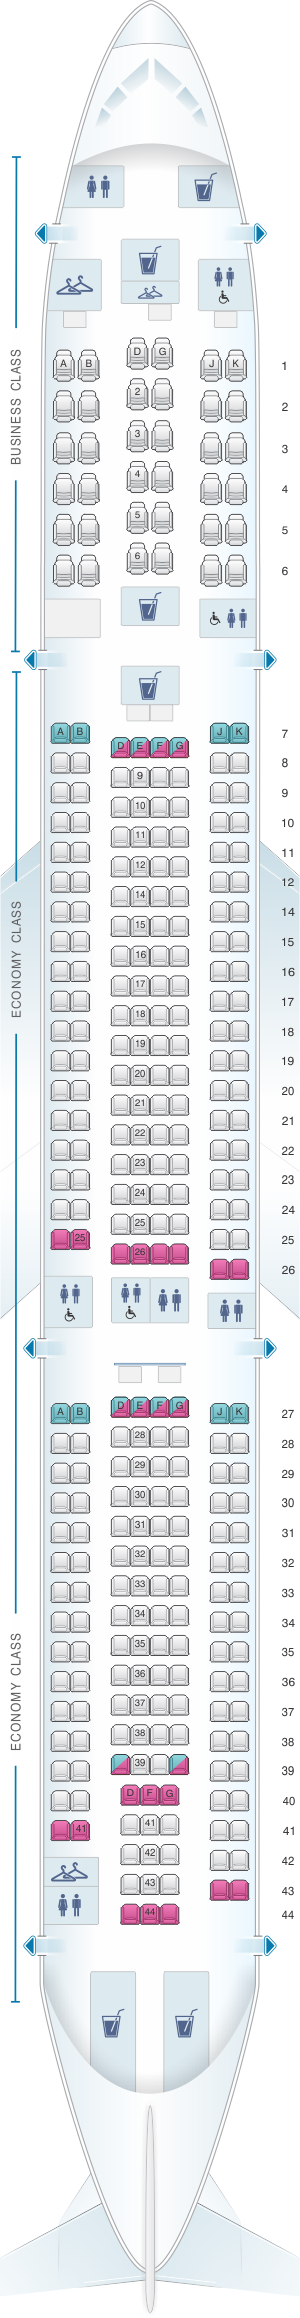 Seat map for China Airlines Airbus A330 300 Config. 2